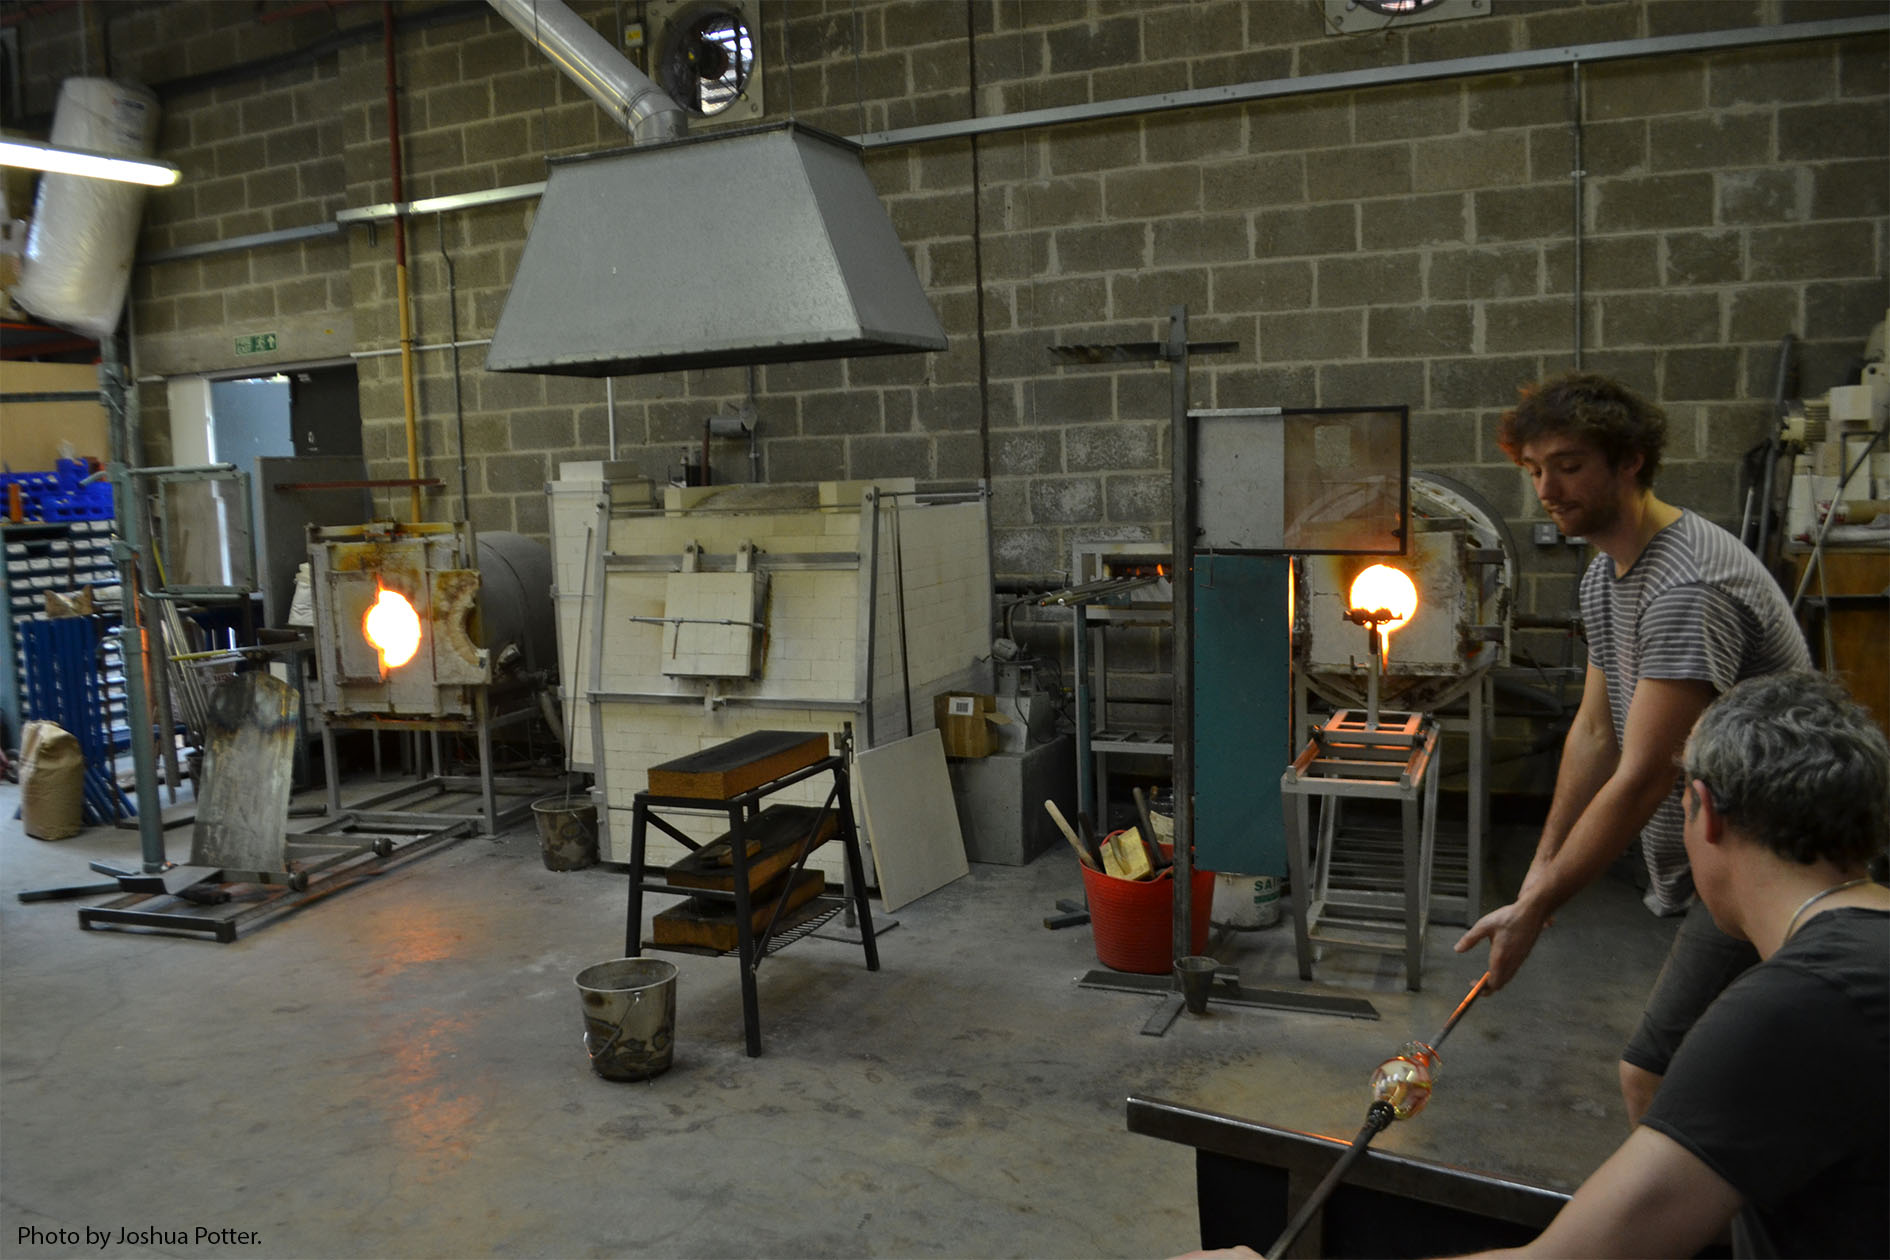 The two outside furnaces constantly reheat and remold the piece while the middle furnace, known simply as The Furnace, provides the molten glass used throughout the piece. The glass in this furnace is 1100C.